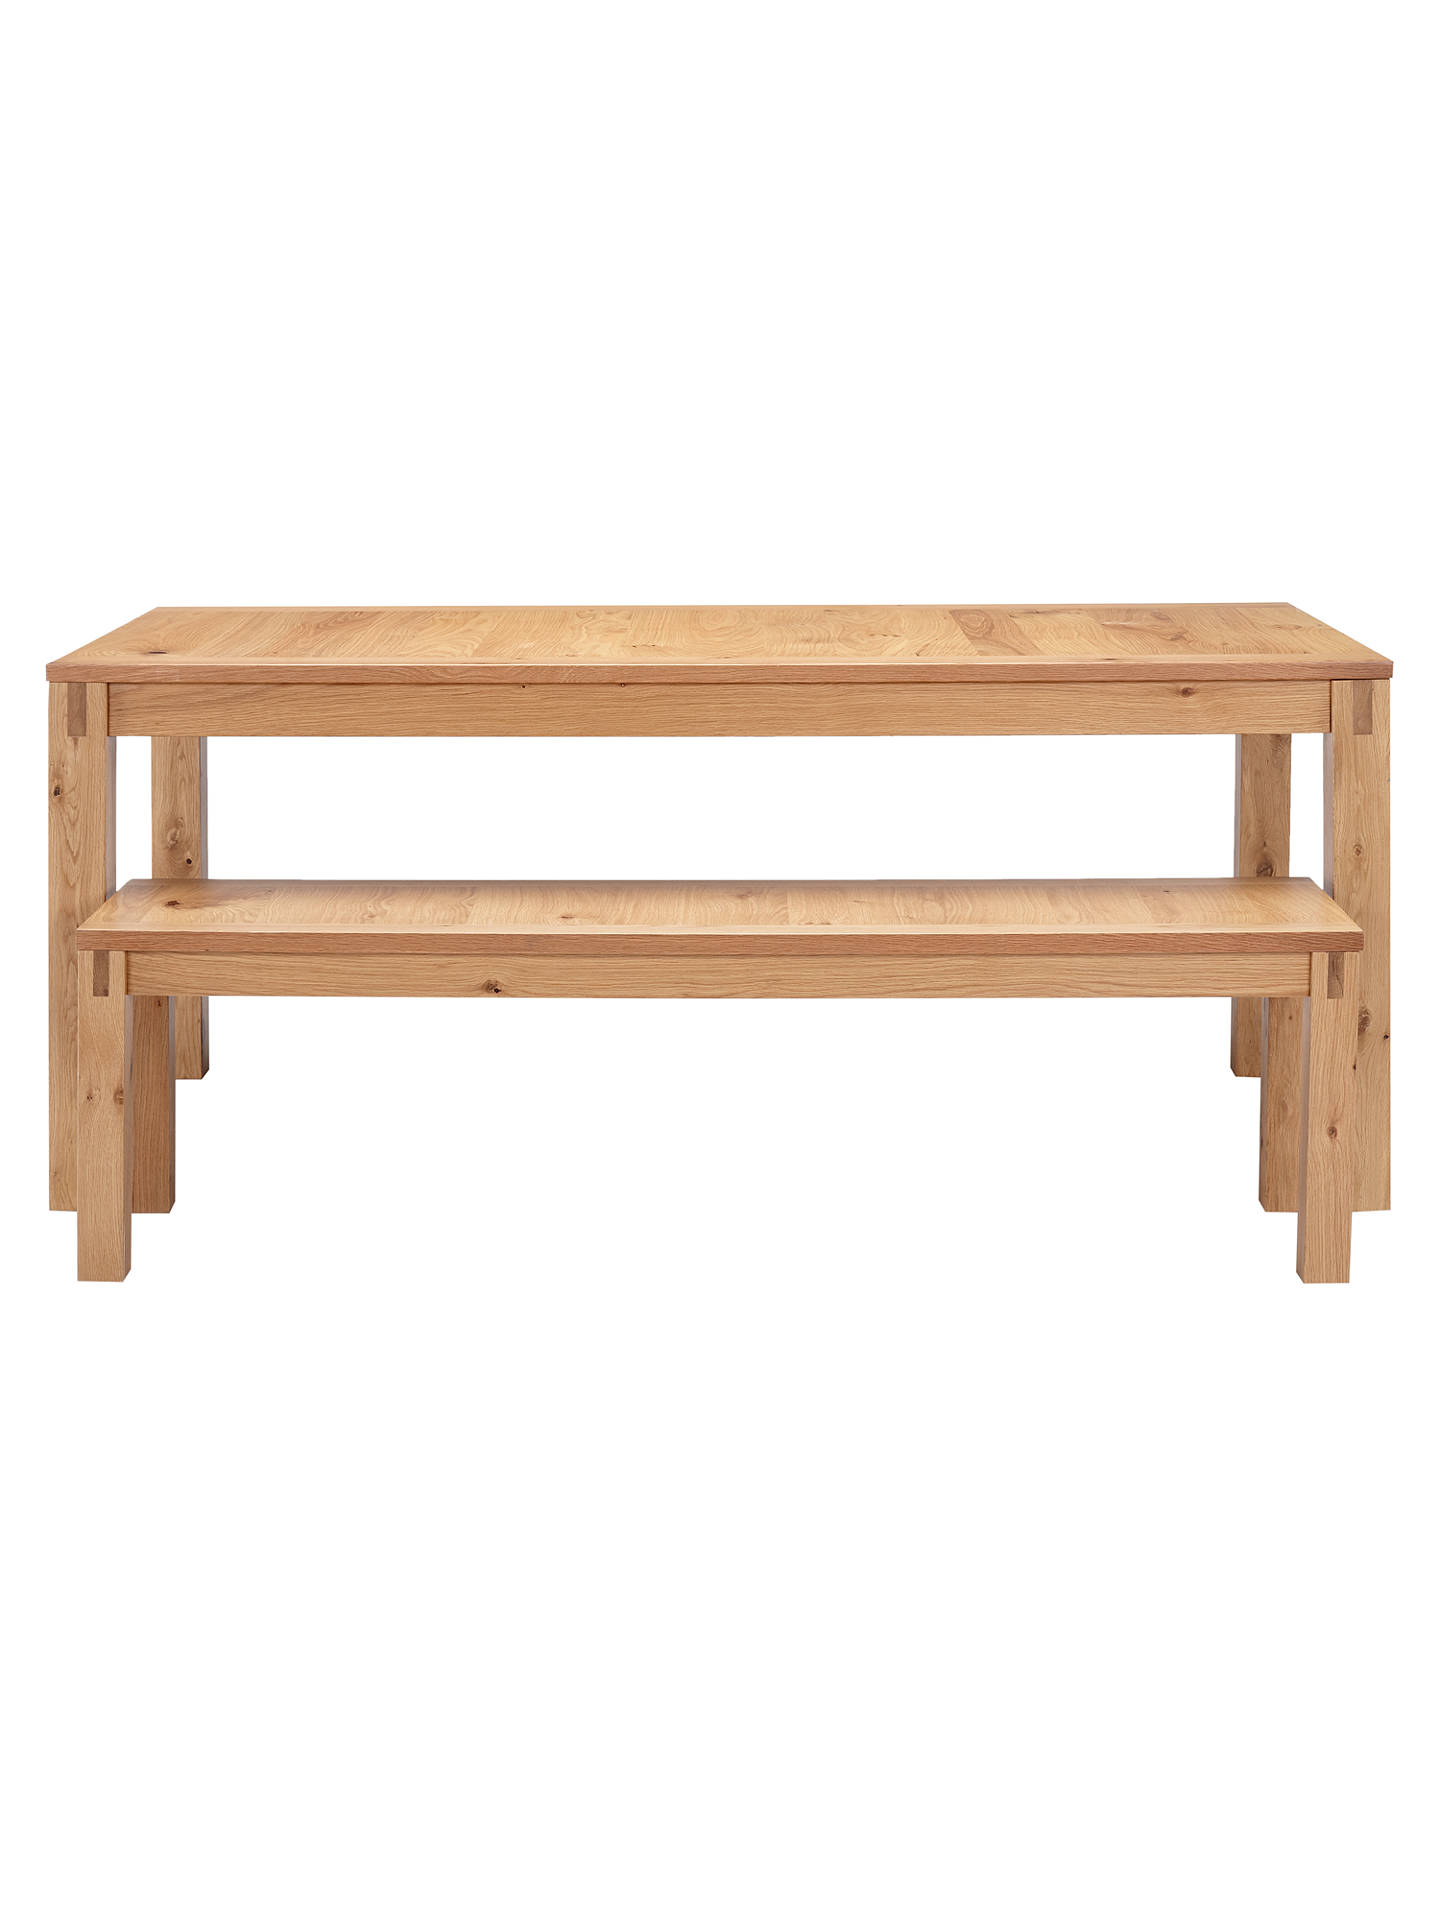 BuyJohn Lewis Rimini 8-12 Seater Extending Dining Table Online at johnlewis.com